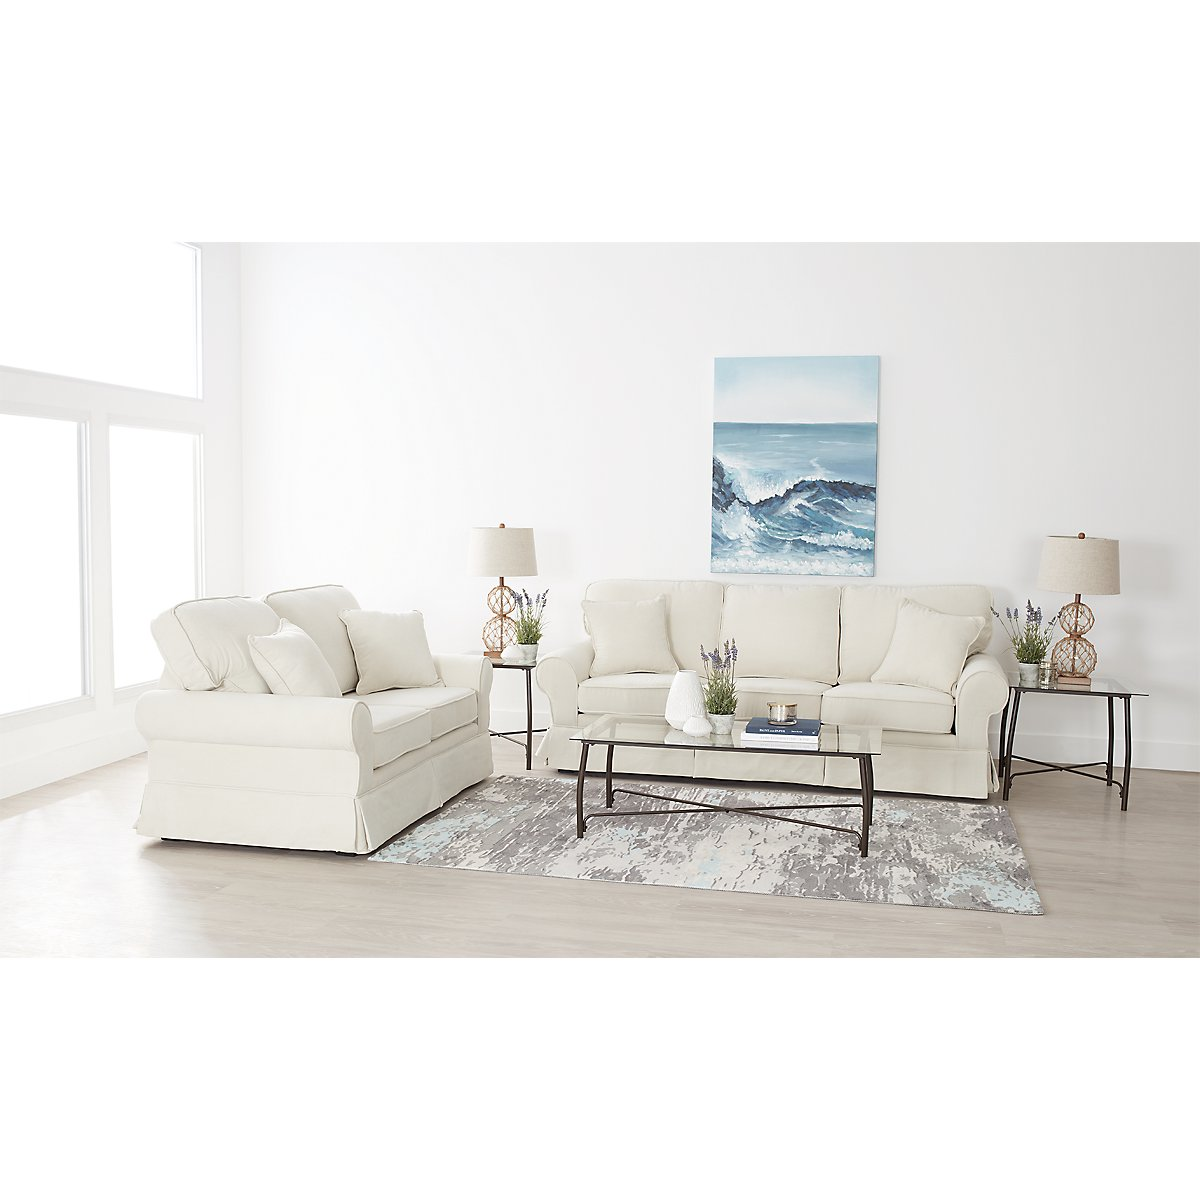 City Furniture: Reese White Large 7-Piece Living Room Package